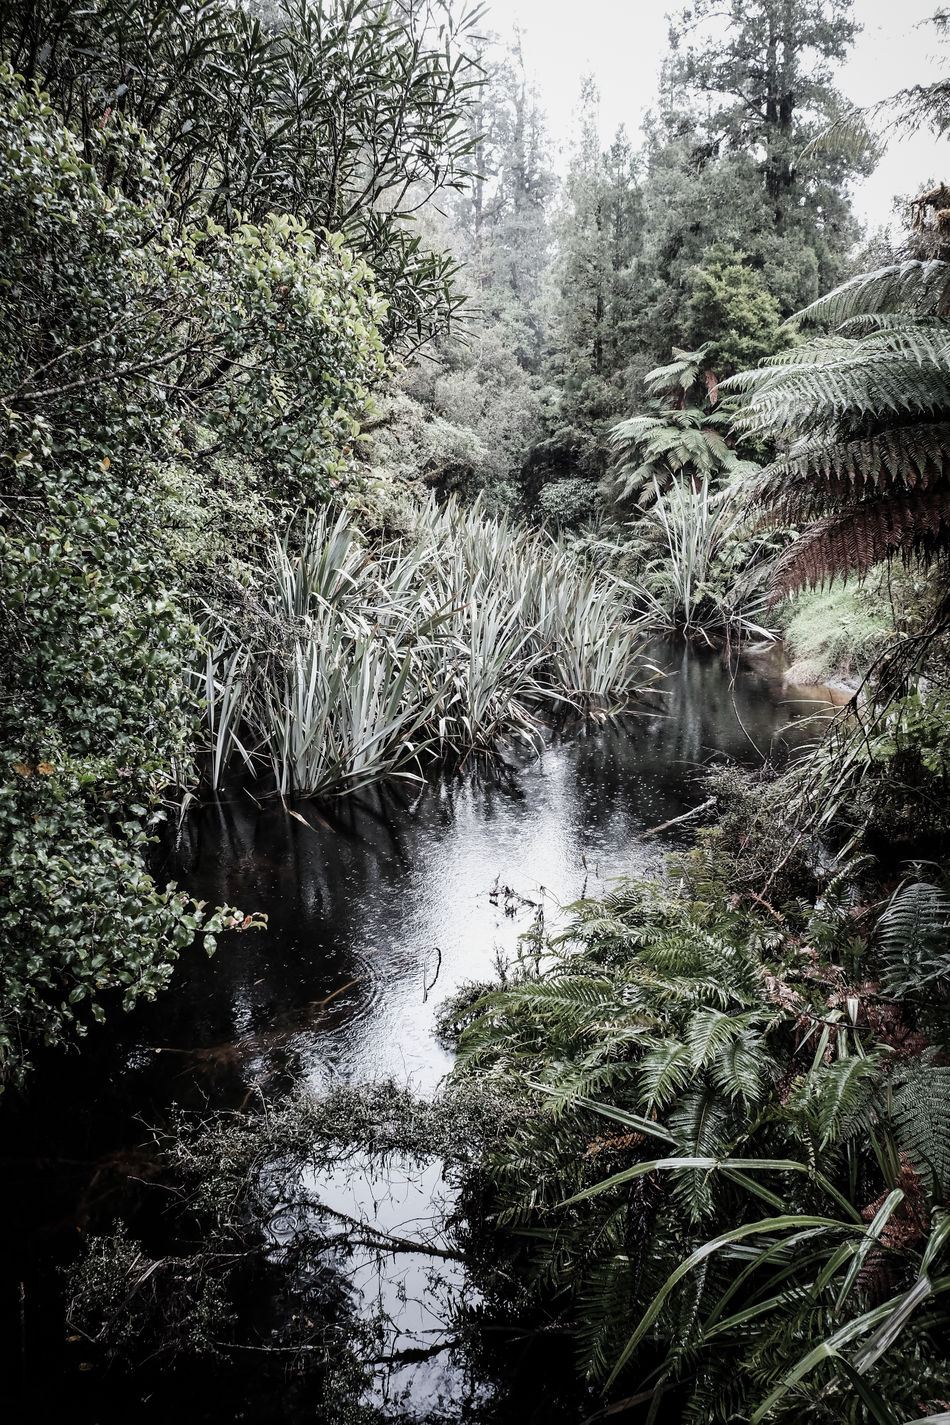 Beauty In Nature Ferns Flowing Water Forest Fox Glacier FUJIFILM X-T1 Green Growth New Zealand New Zealand Beauty New Zealand Impressions New Zealand Scenery No People Outdoors Pond Raindrops Raining Rainy Days River Scenics Tranquility Untouched Untouchednature Water Plant Water Plants